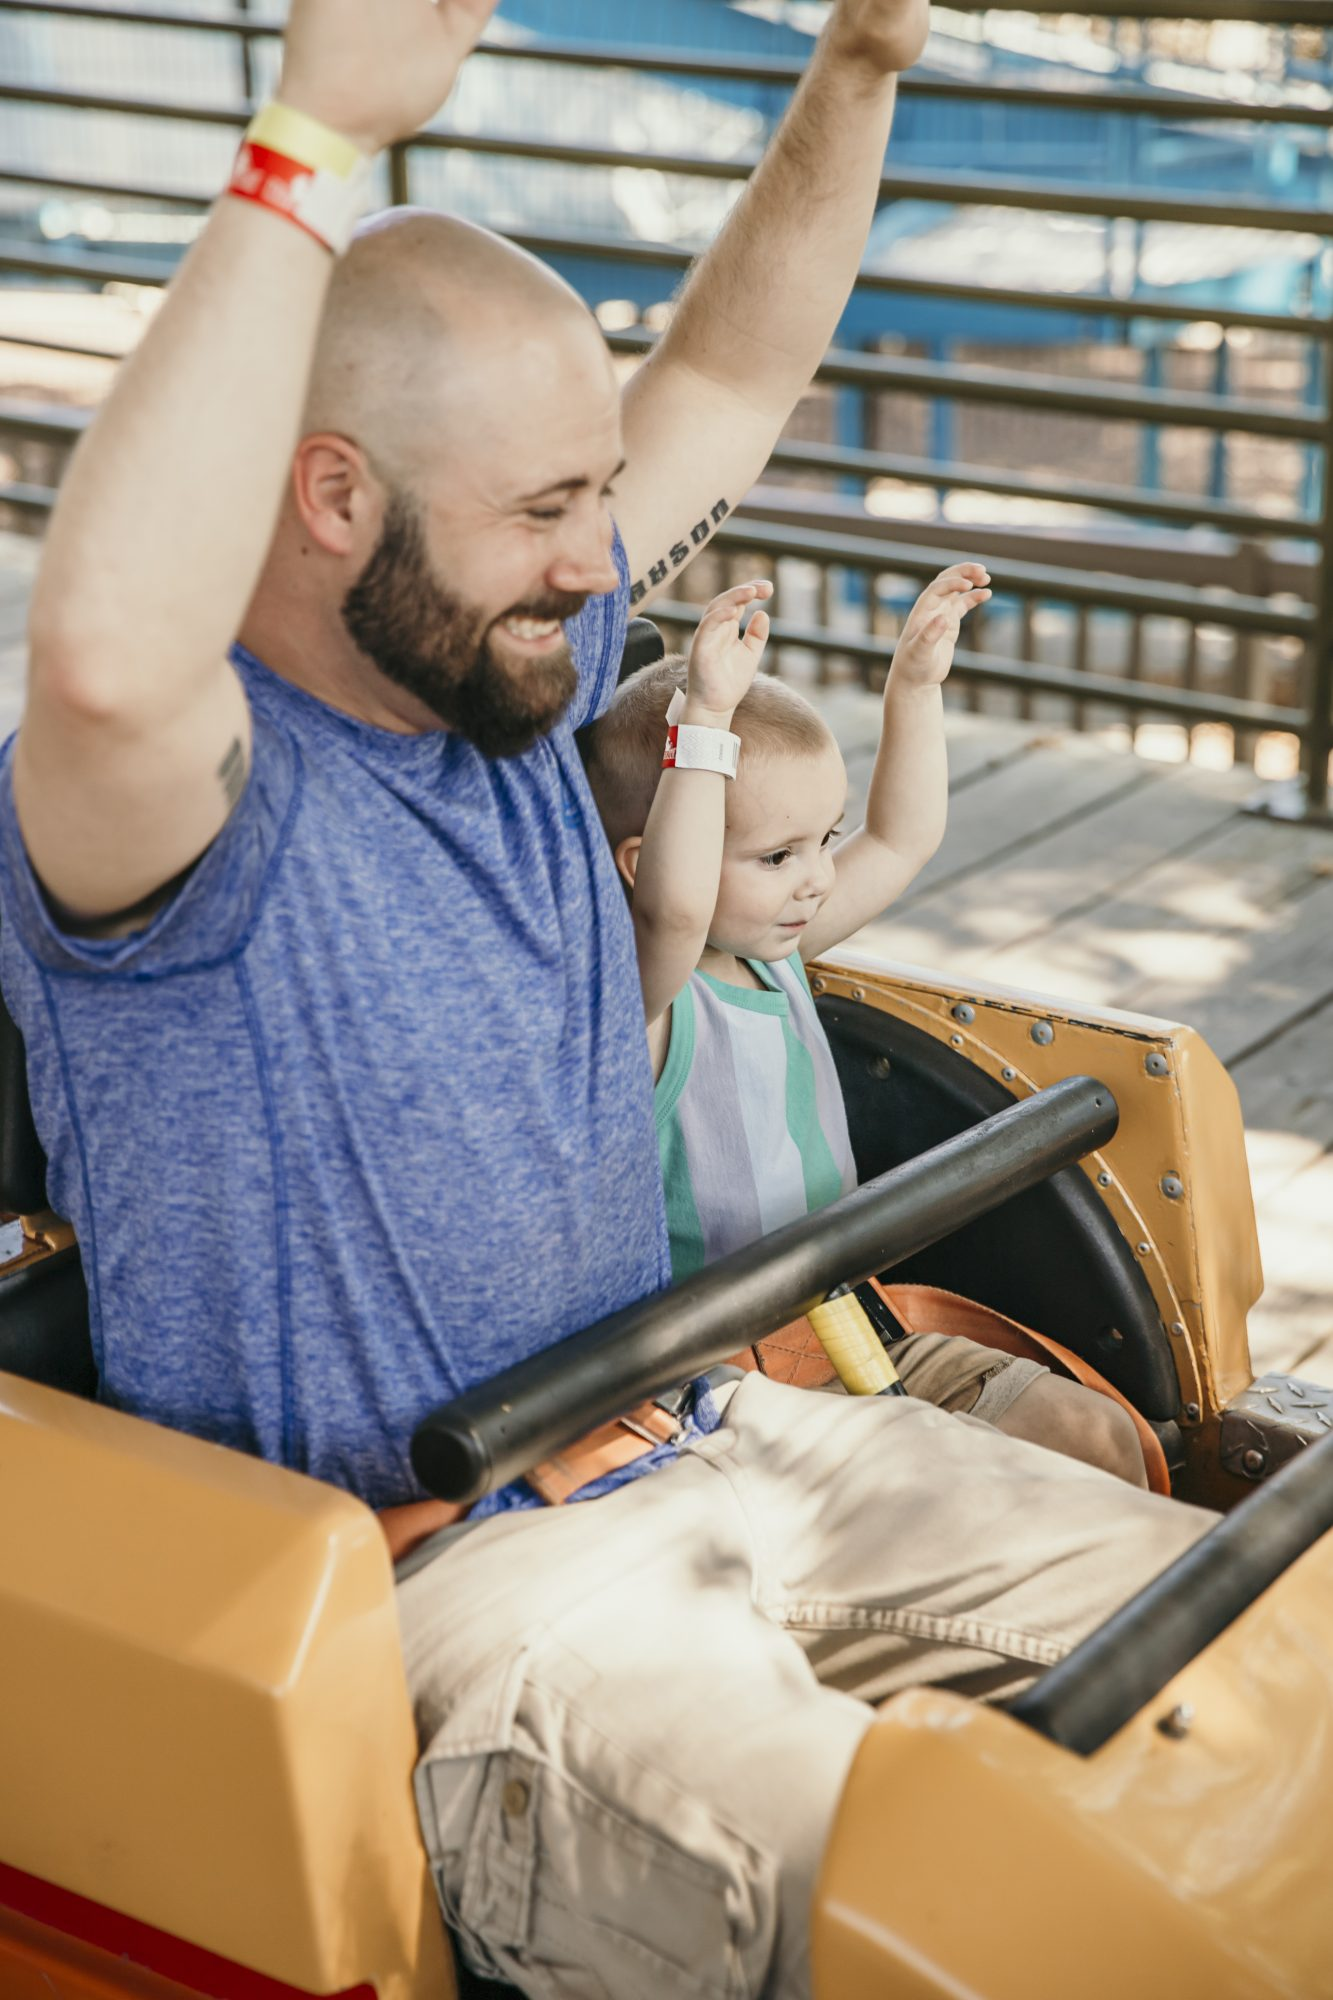 chris and jax riding their first roller coaster together